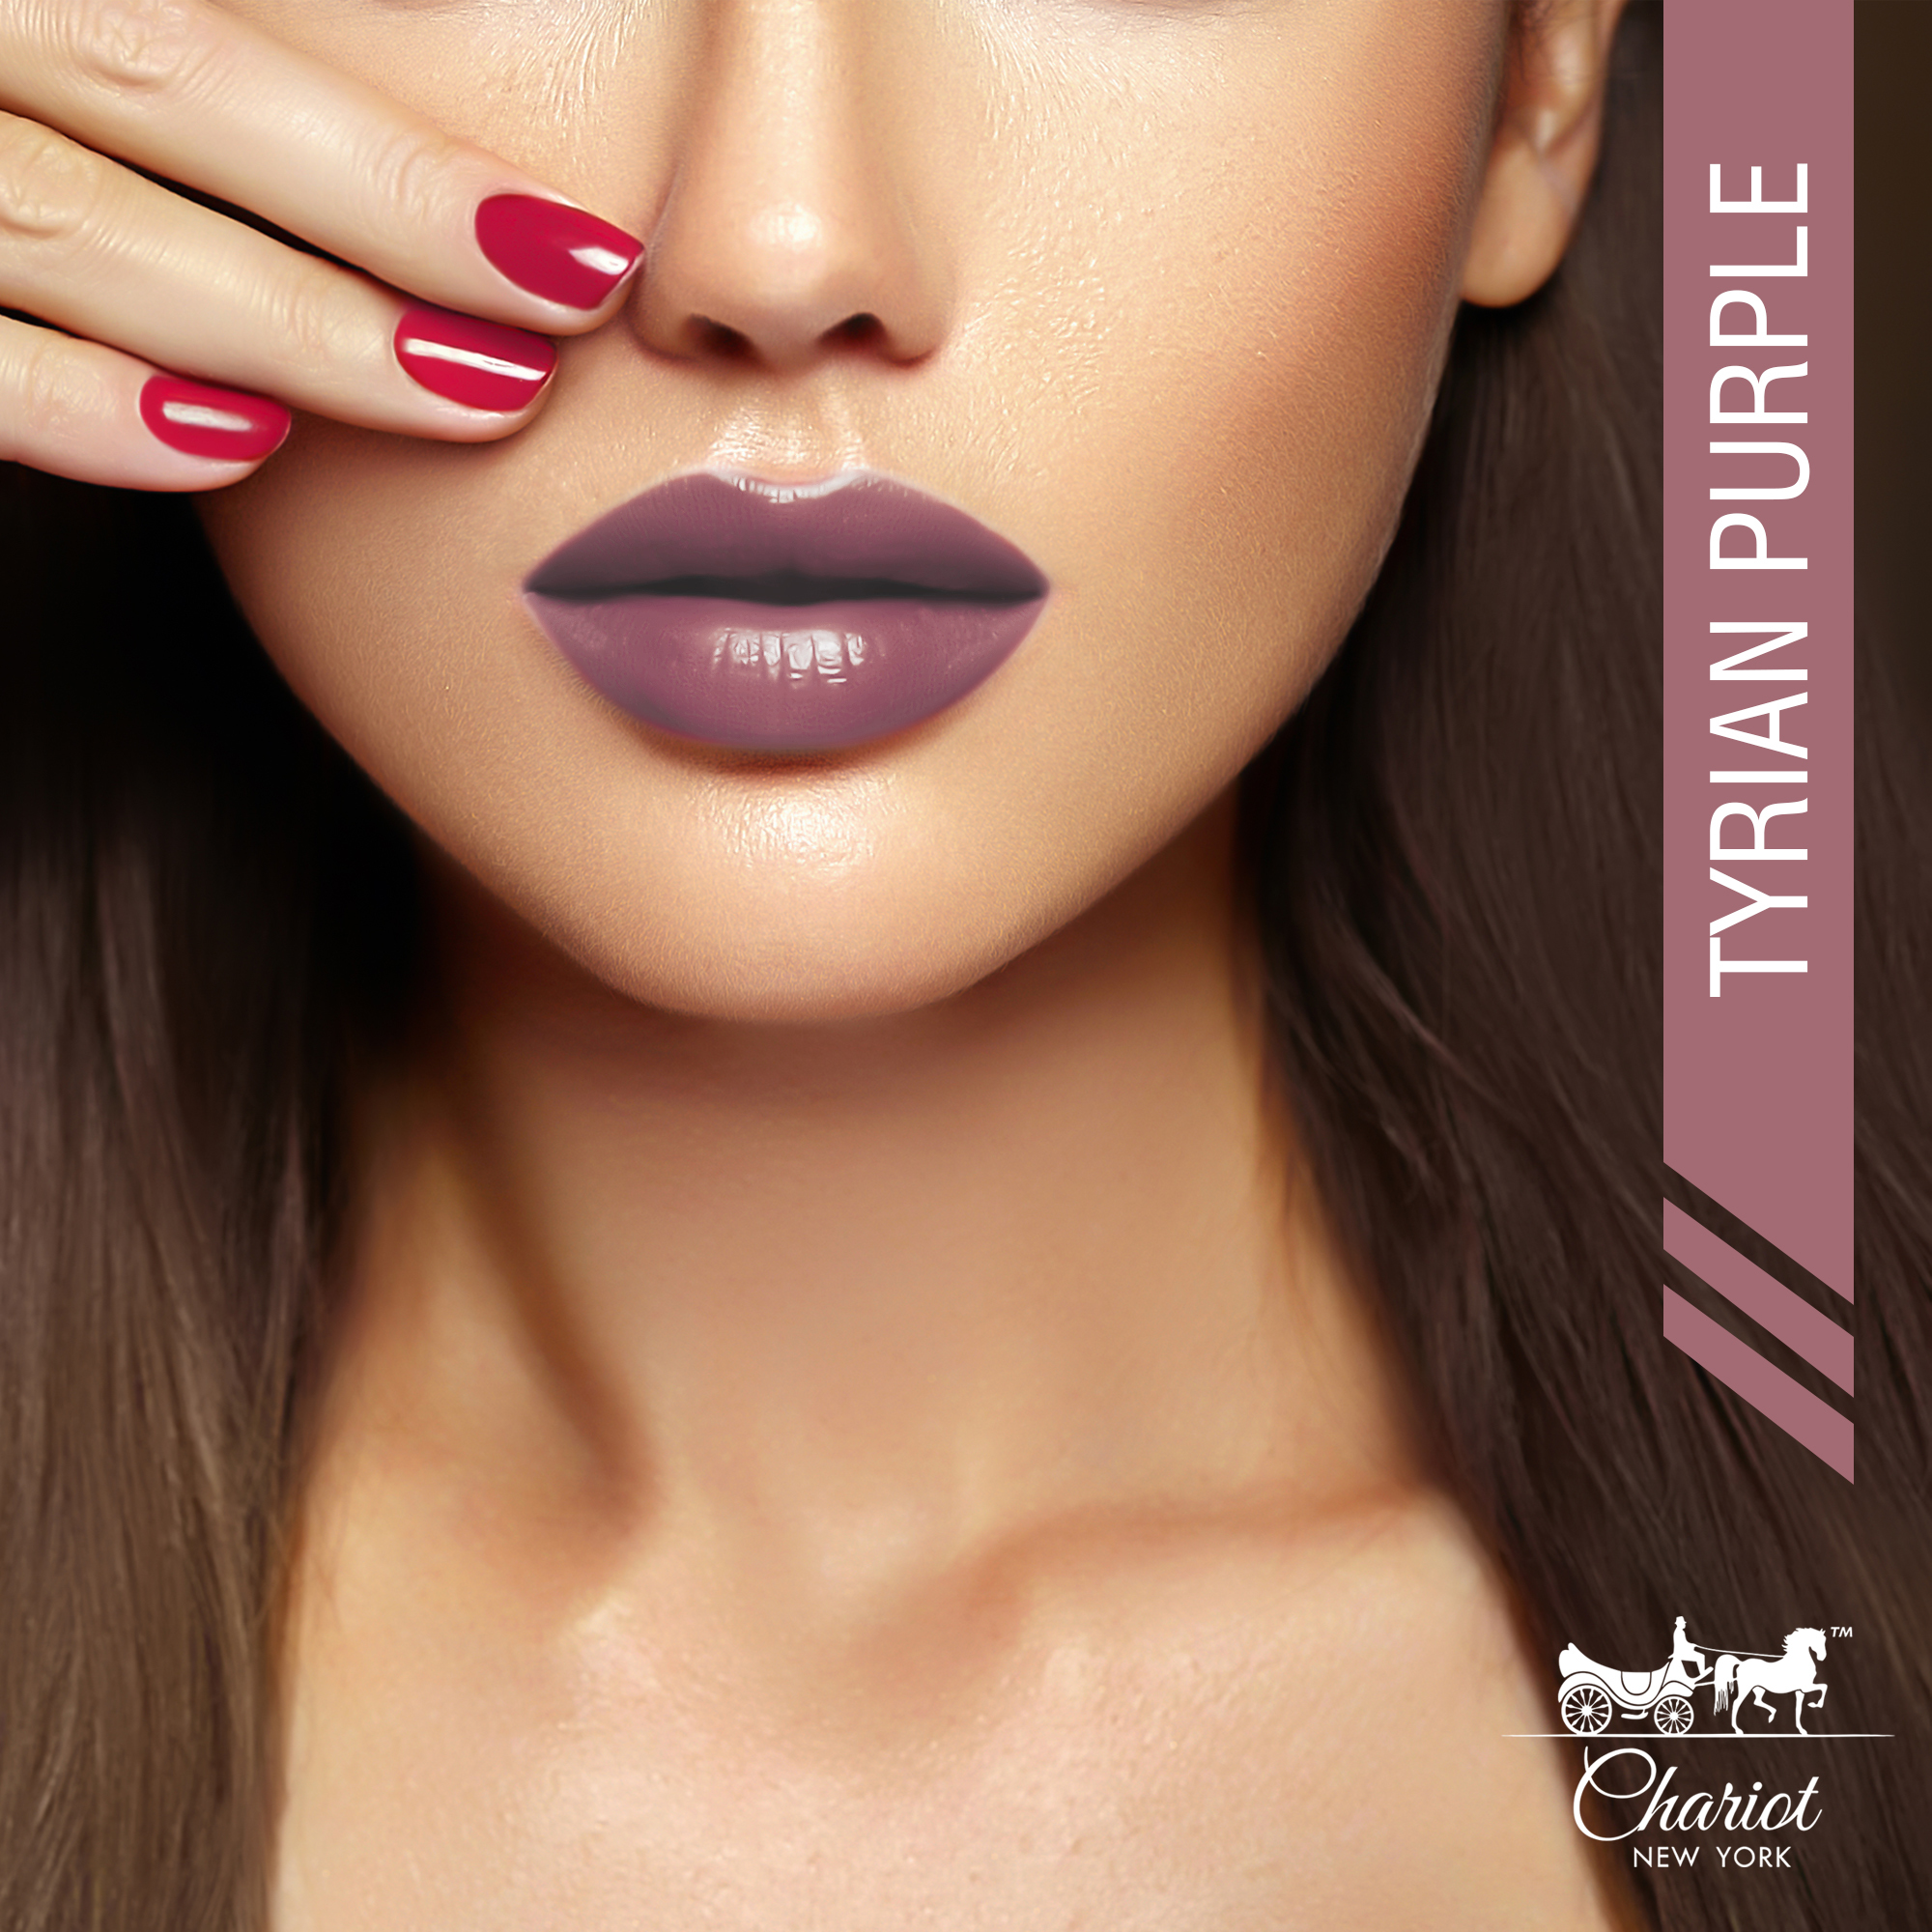 Chariot New York Tyrian Purple Lipstick (Mauve)